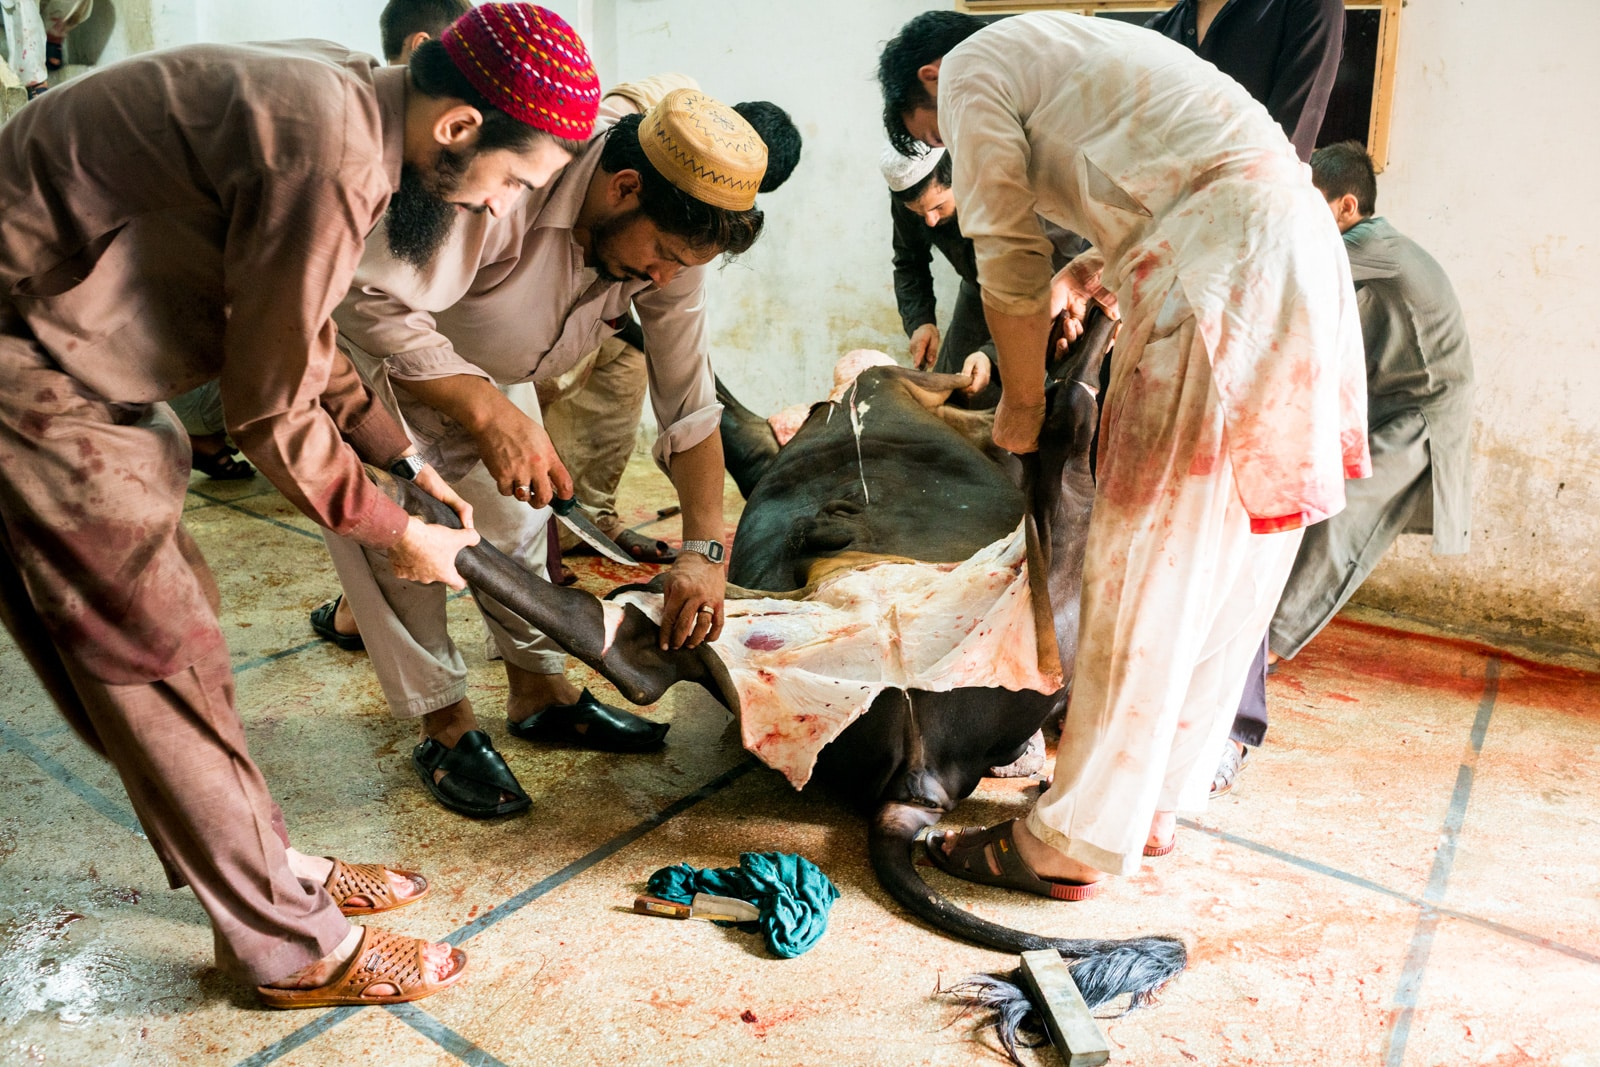 Celebrating Eid al-Adha in Lahore, Pakistan - Skinning a cow - Lost With Purpose travel blog